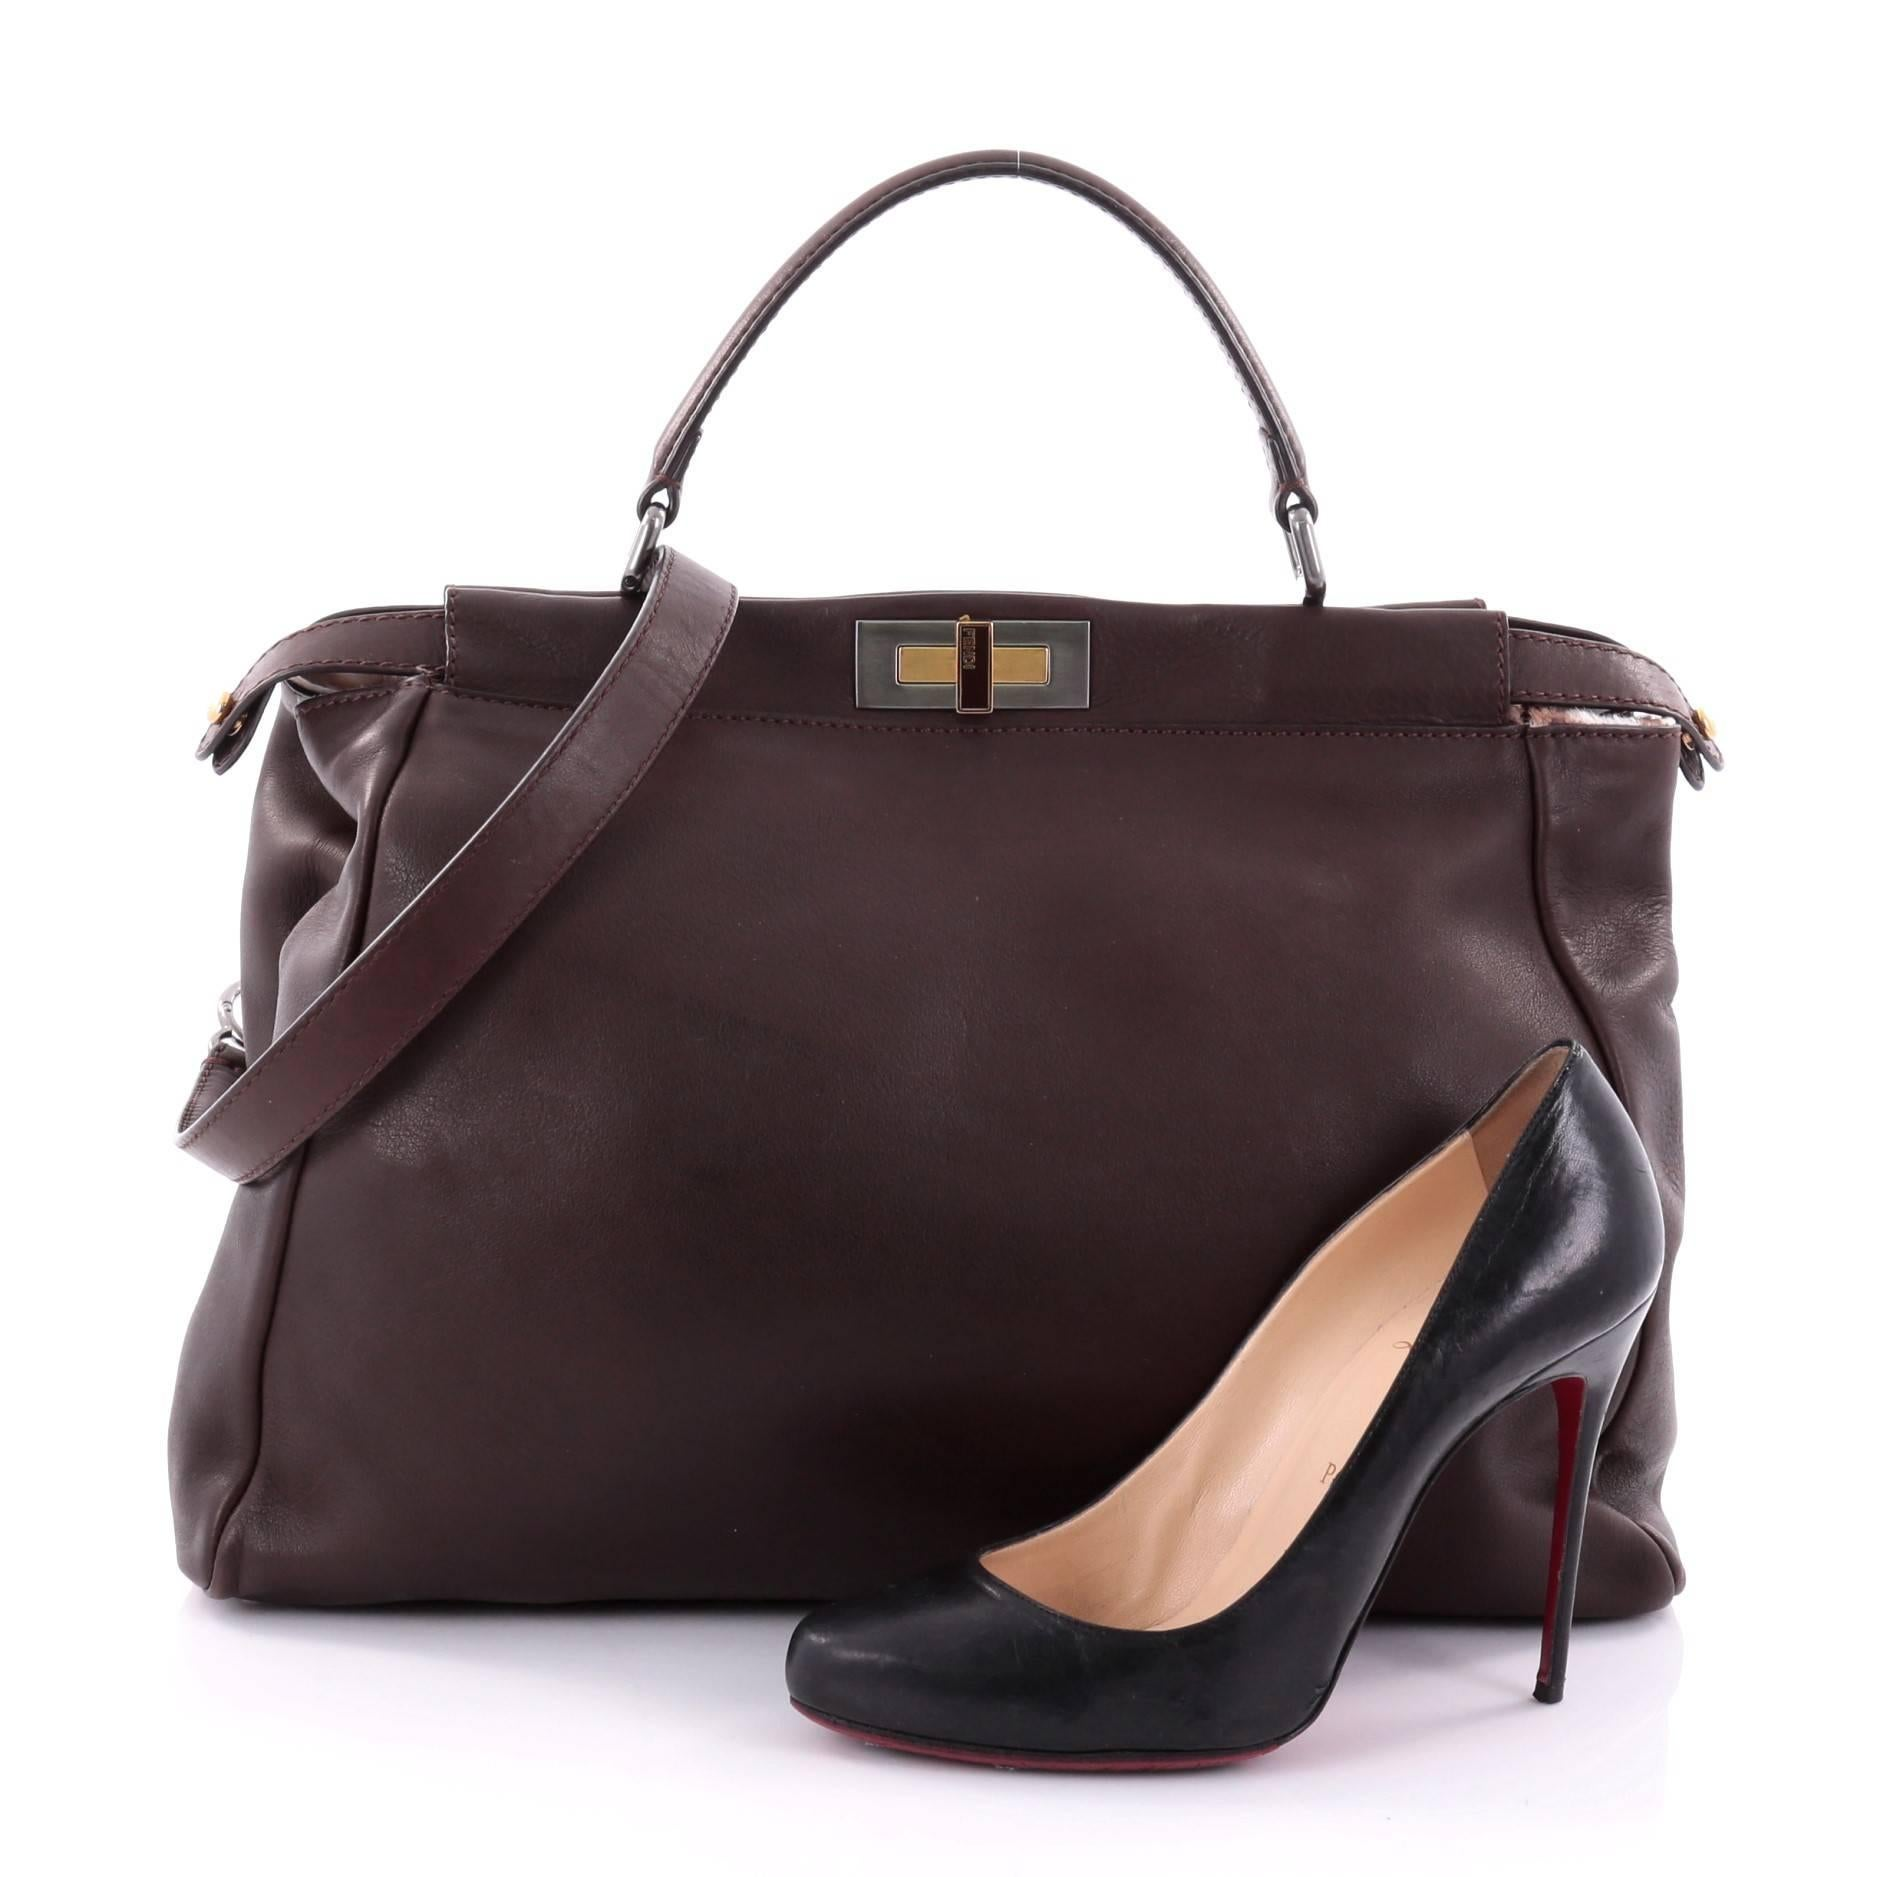 238e5f3f6e ... order this authentic fendi peekaboo handbag leather large is one of  fendis best known designs exuding coupon for fendi zucca large bag de jour  ...